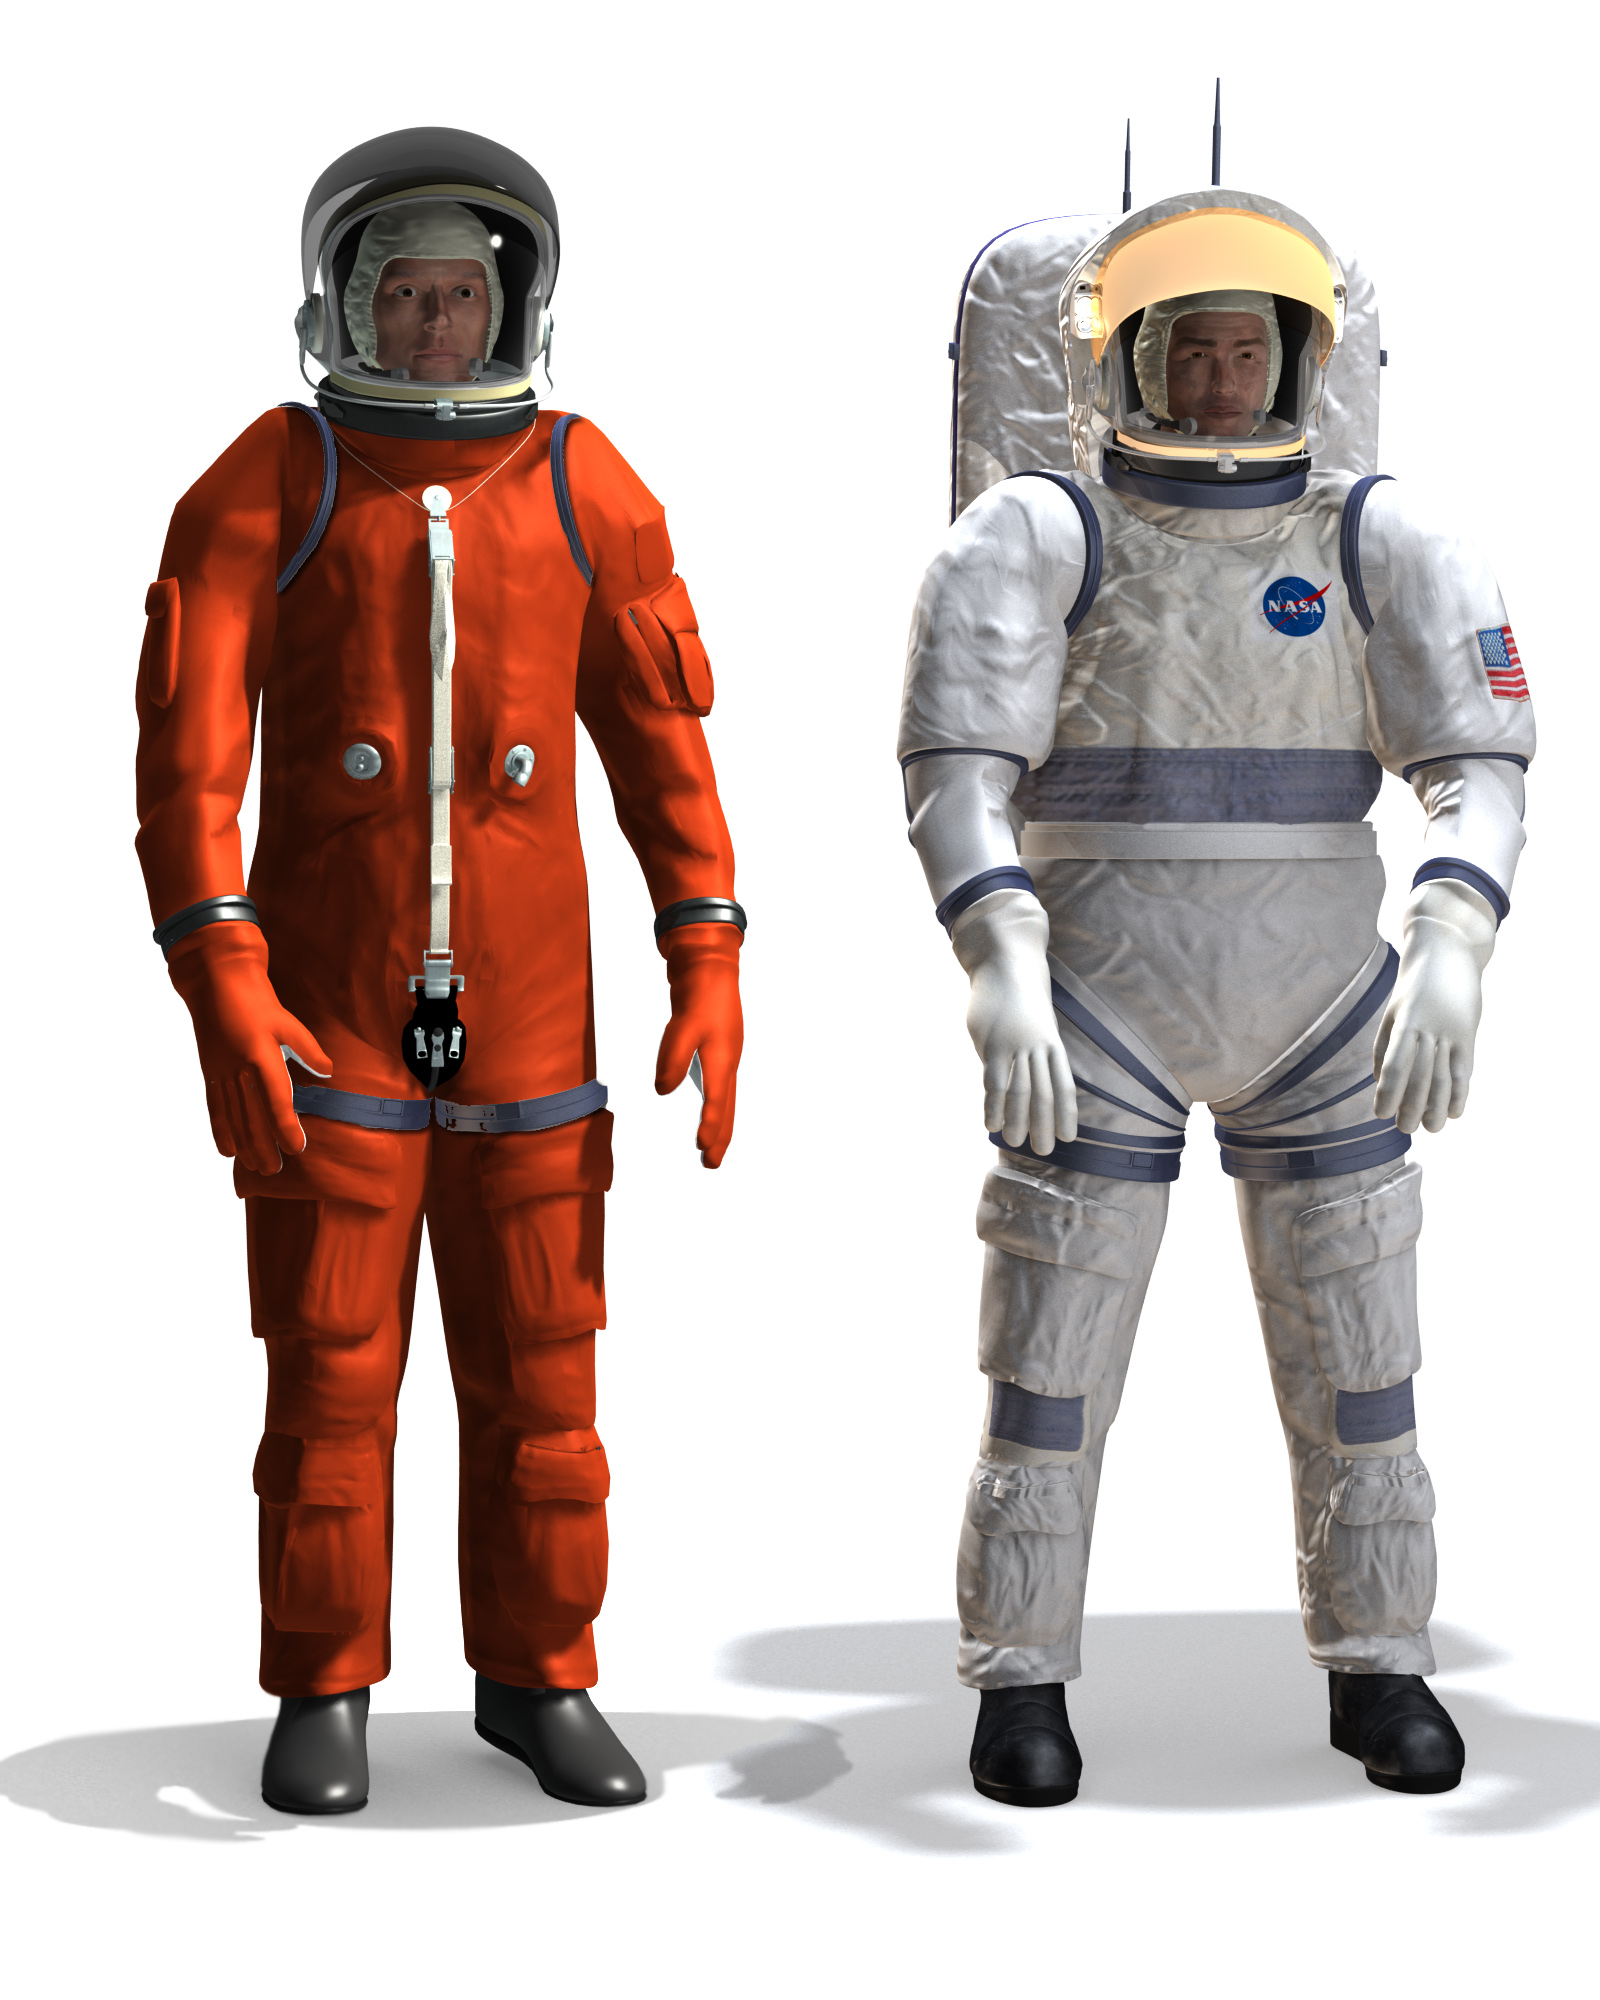 astronaut space suit - photo #16